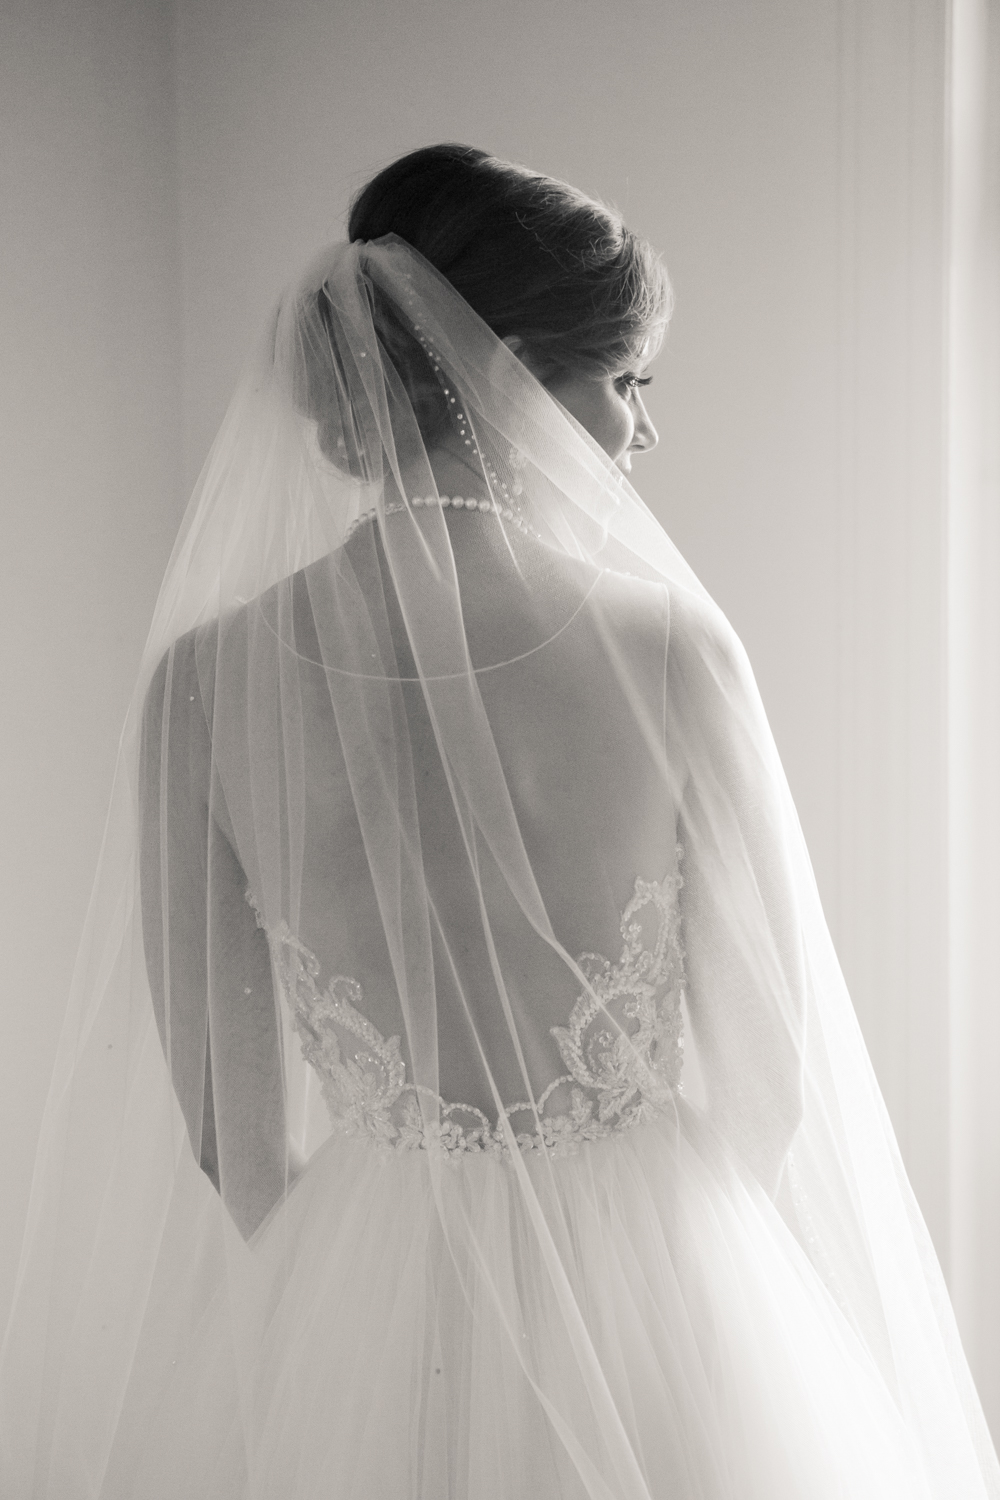 Black and white portrait of bride, back through sheer dress and veil